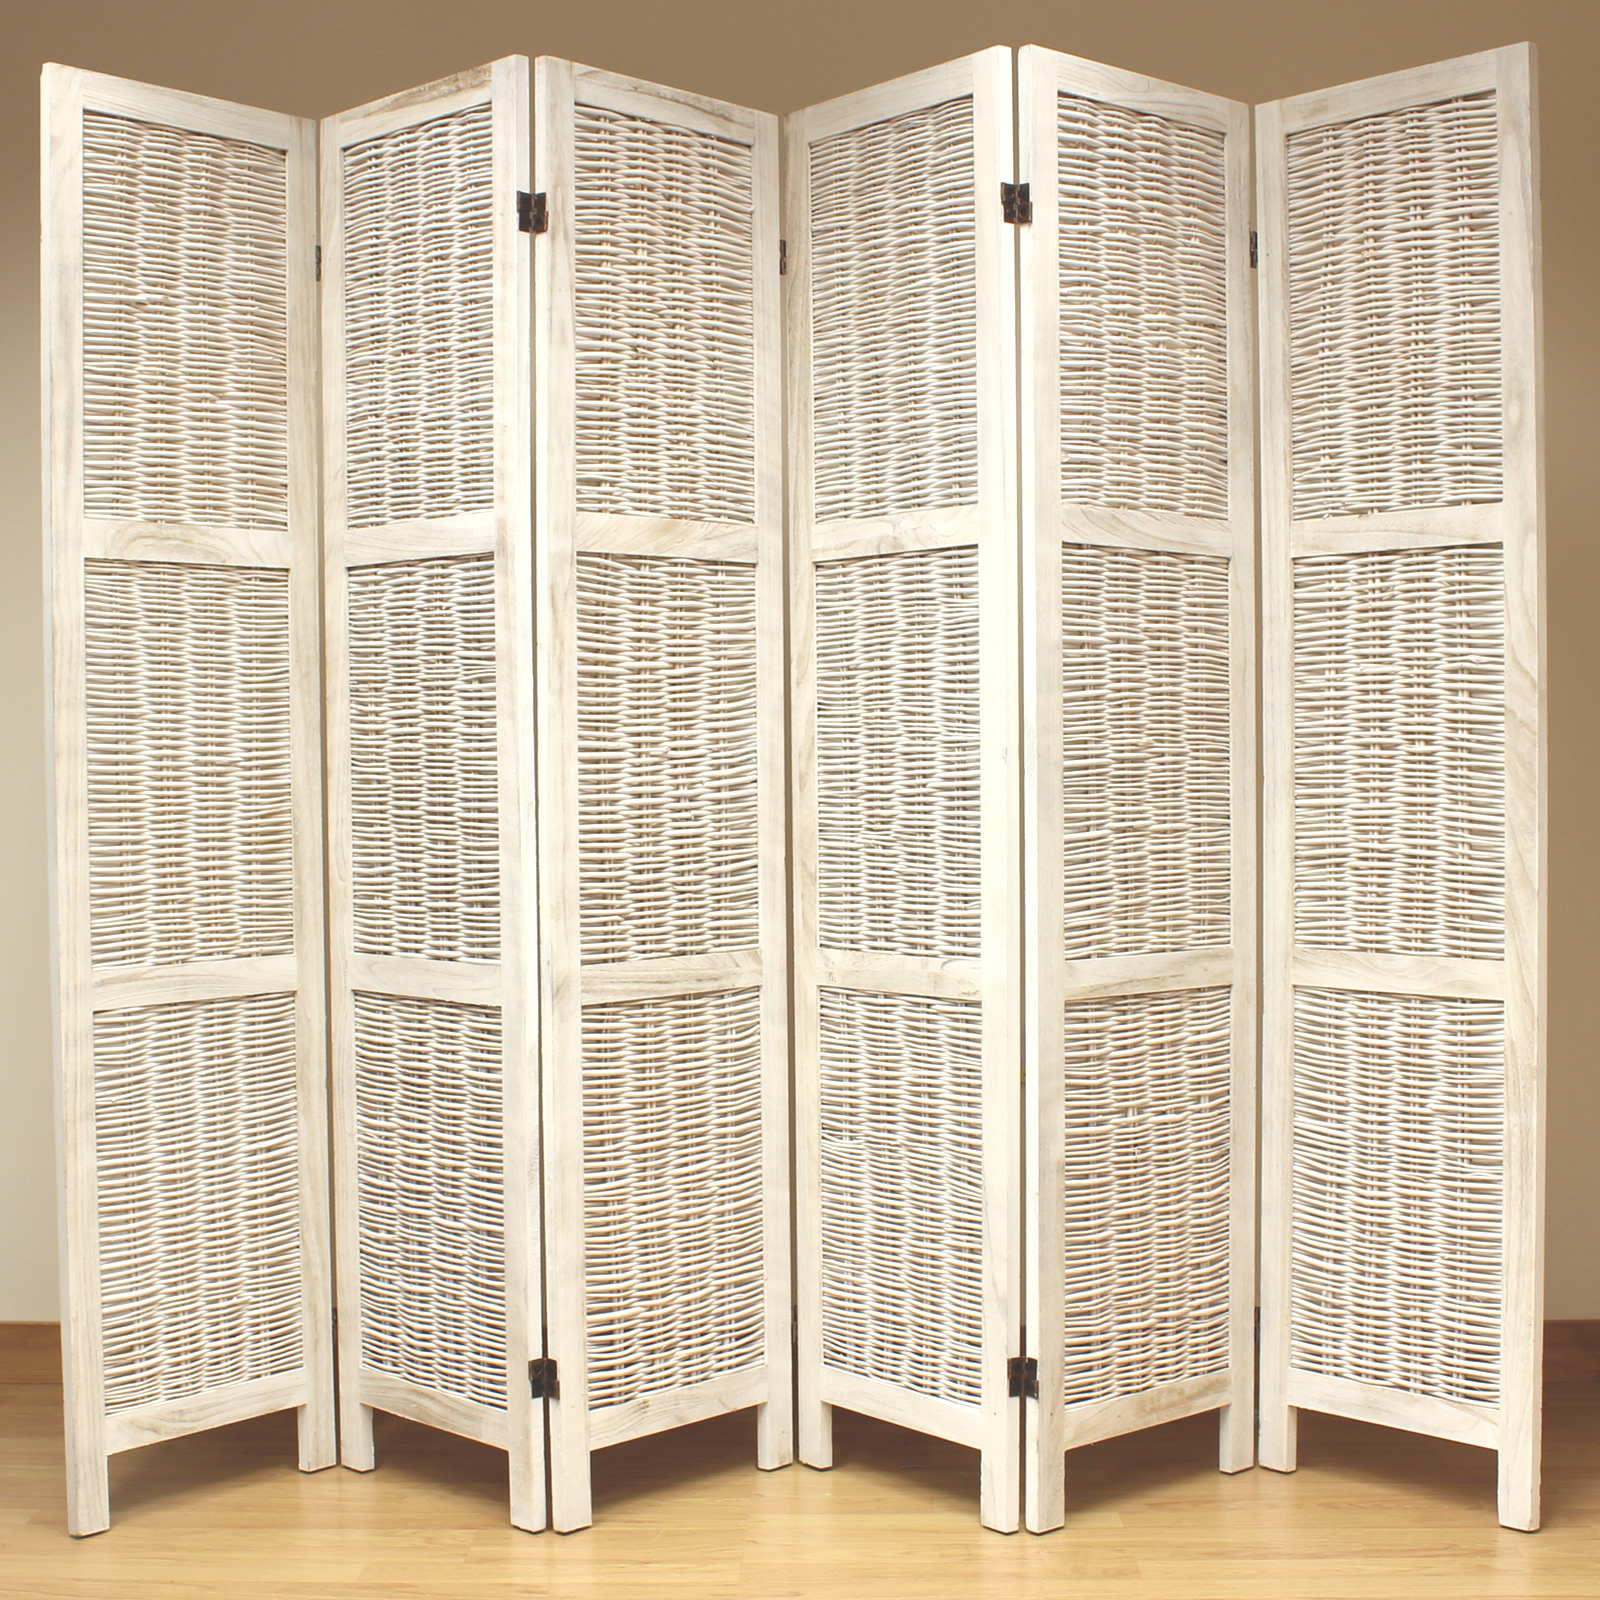 Cream 6 Panel Wood Frame Wicker Room Divider Privacy Screen ...